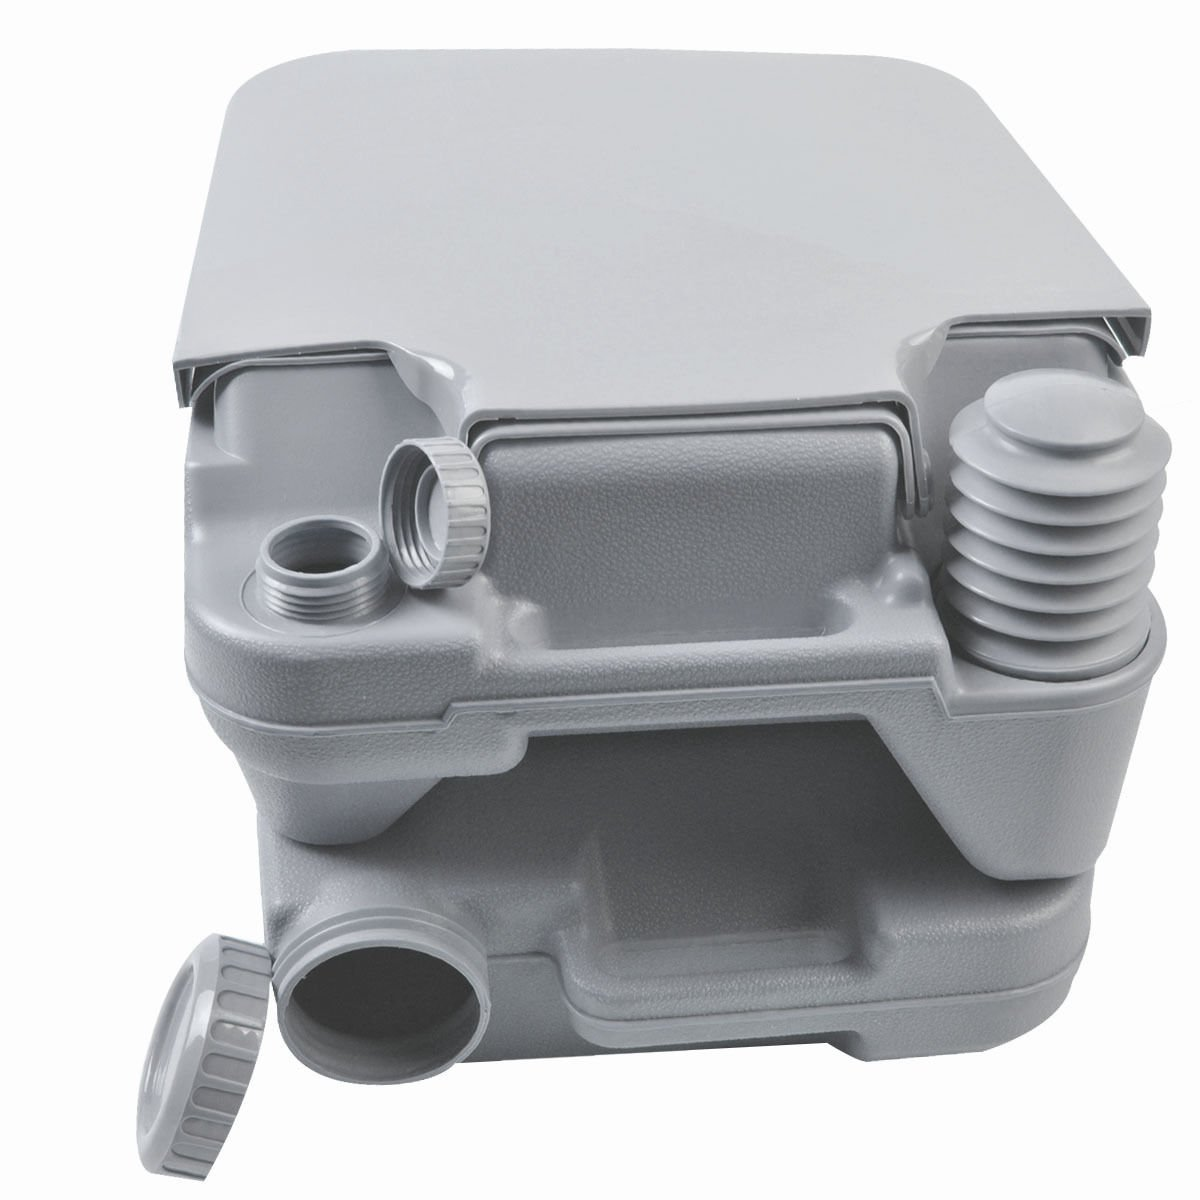 Portable Toilet Travel Camping Outdoor Indoor Toilet Potty Flush 2.8 Gallon 10L by Caraya (Image #3)